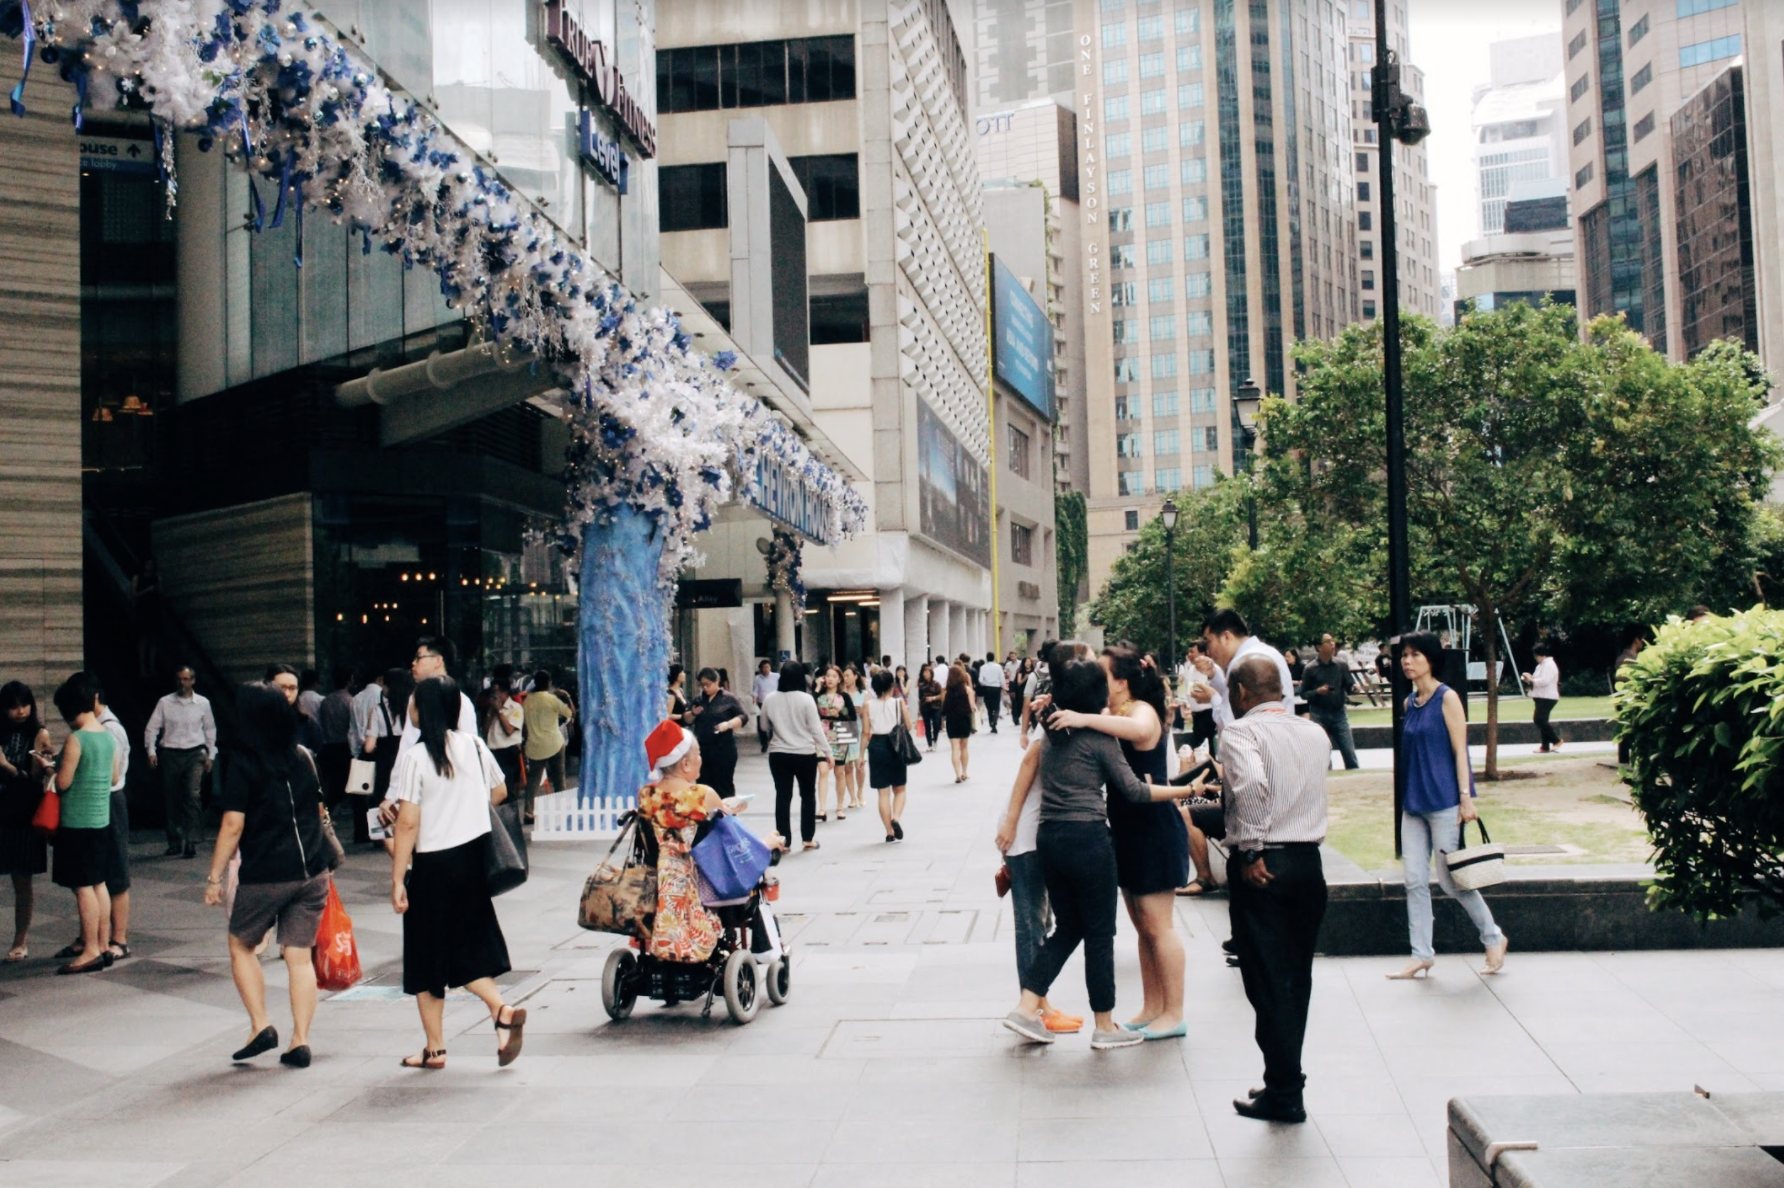 A survey by REACH found that 49 per cent of respondents were neutral about foreigners in Singapore. Photo: Connected to India